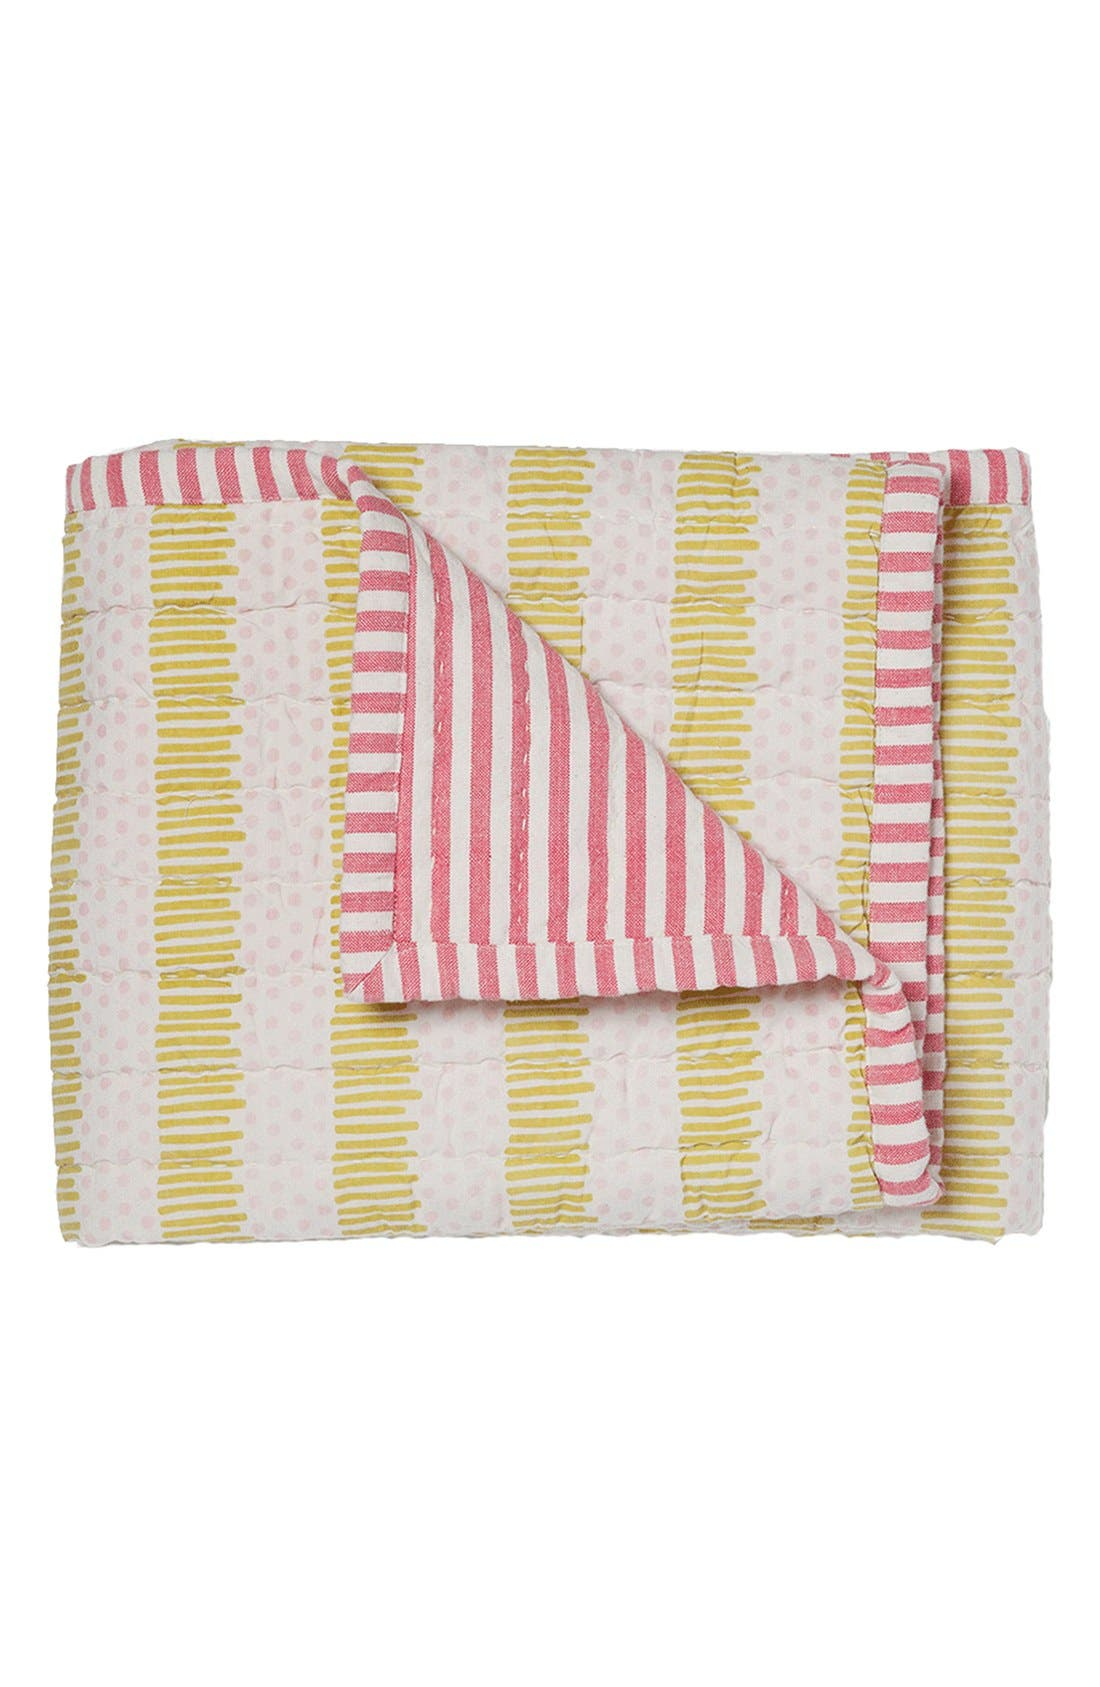 'Hug Me Tight' Cotton Baby Blanket,                             Main thumbnail 1, color,                             Pink/ Citron